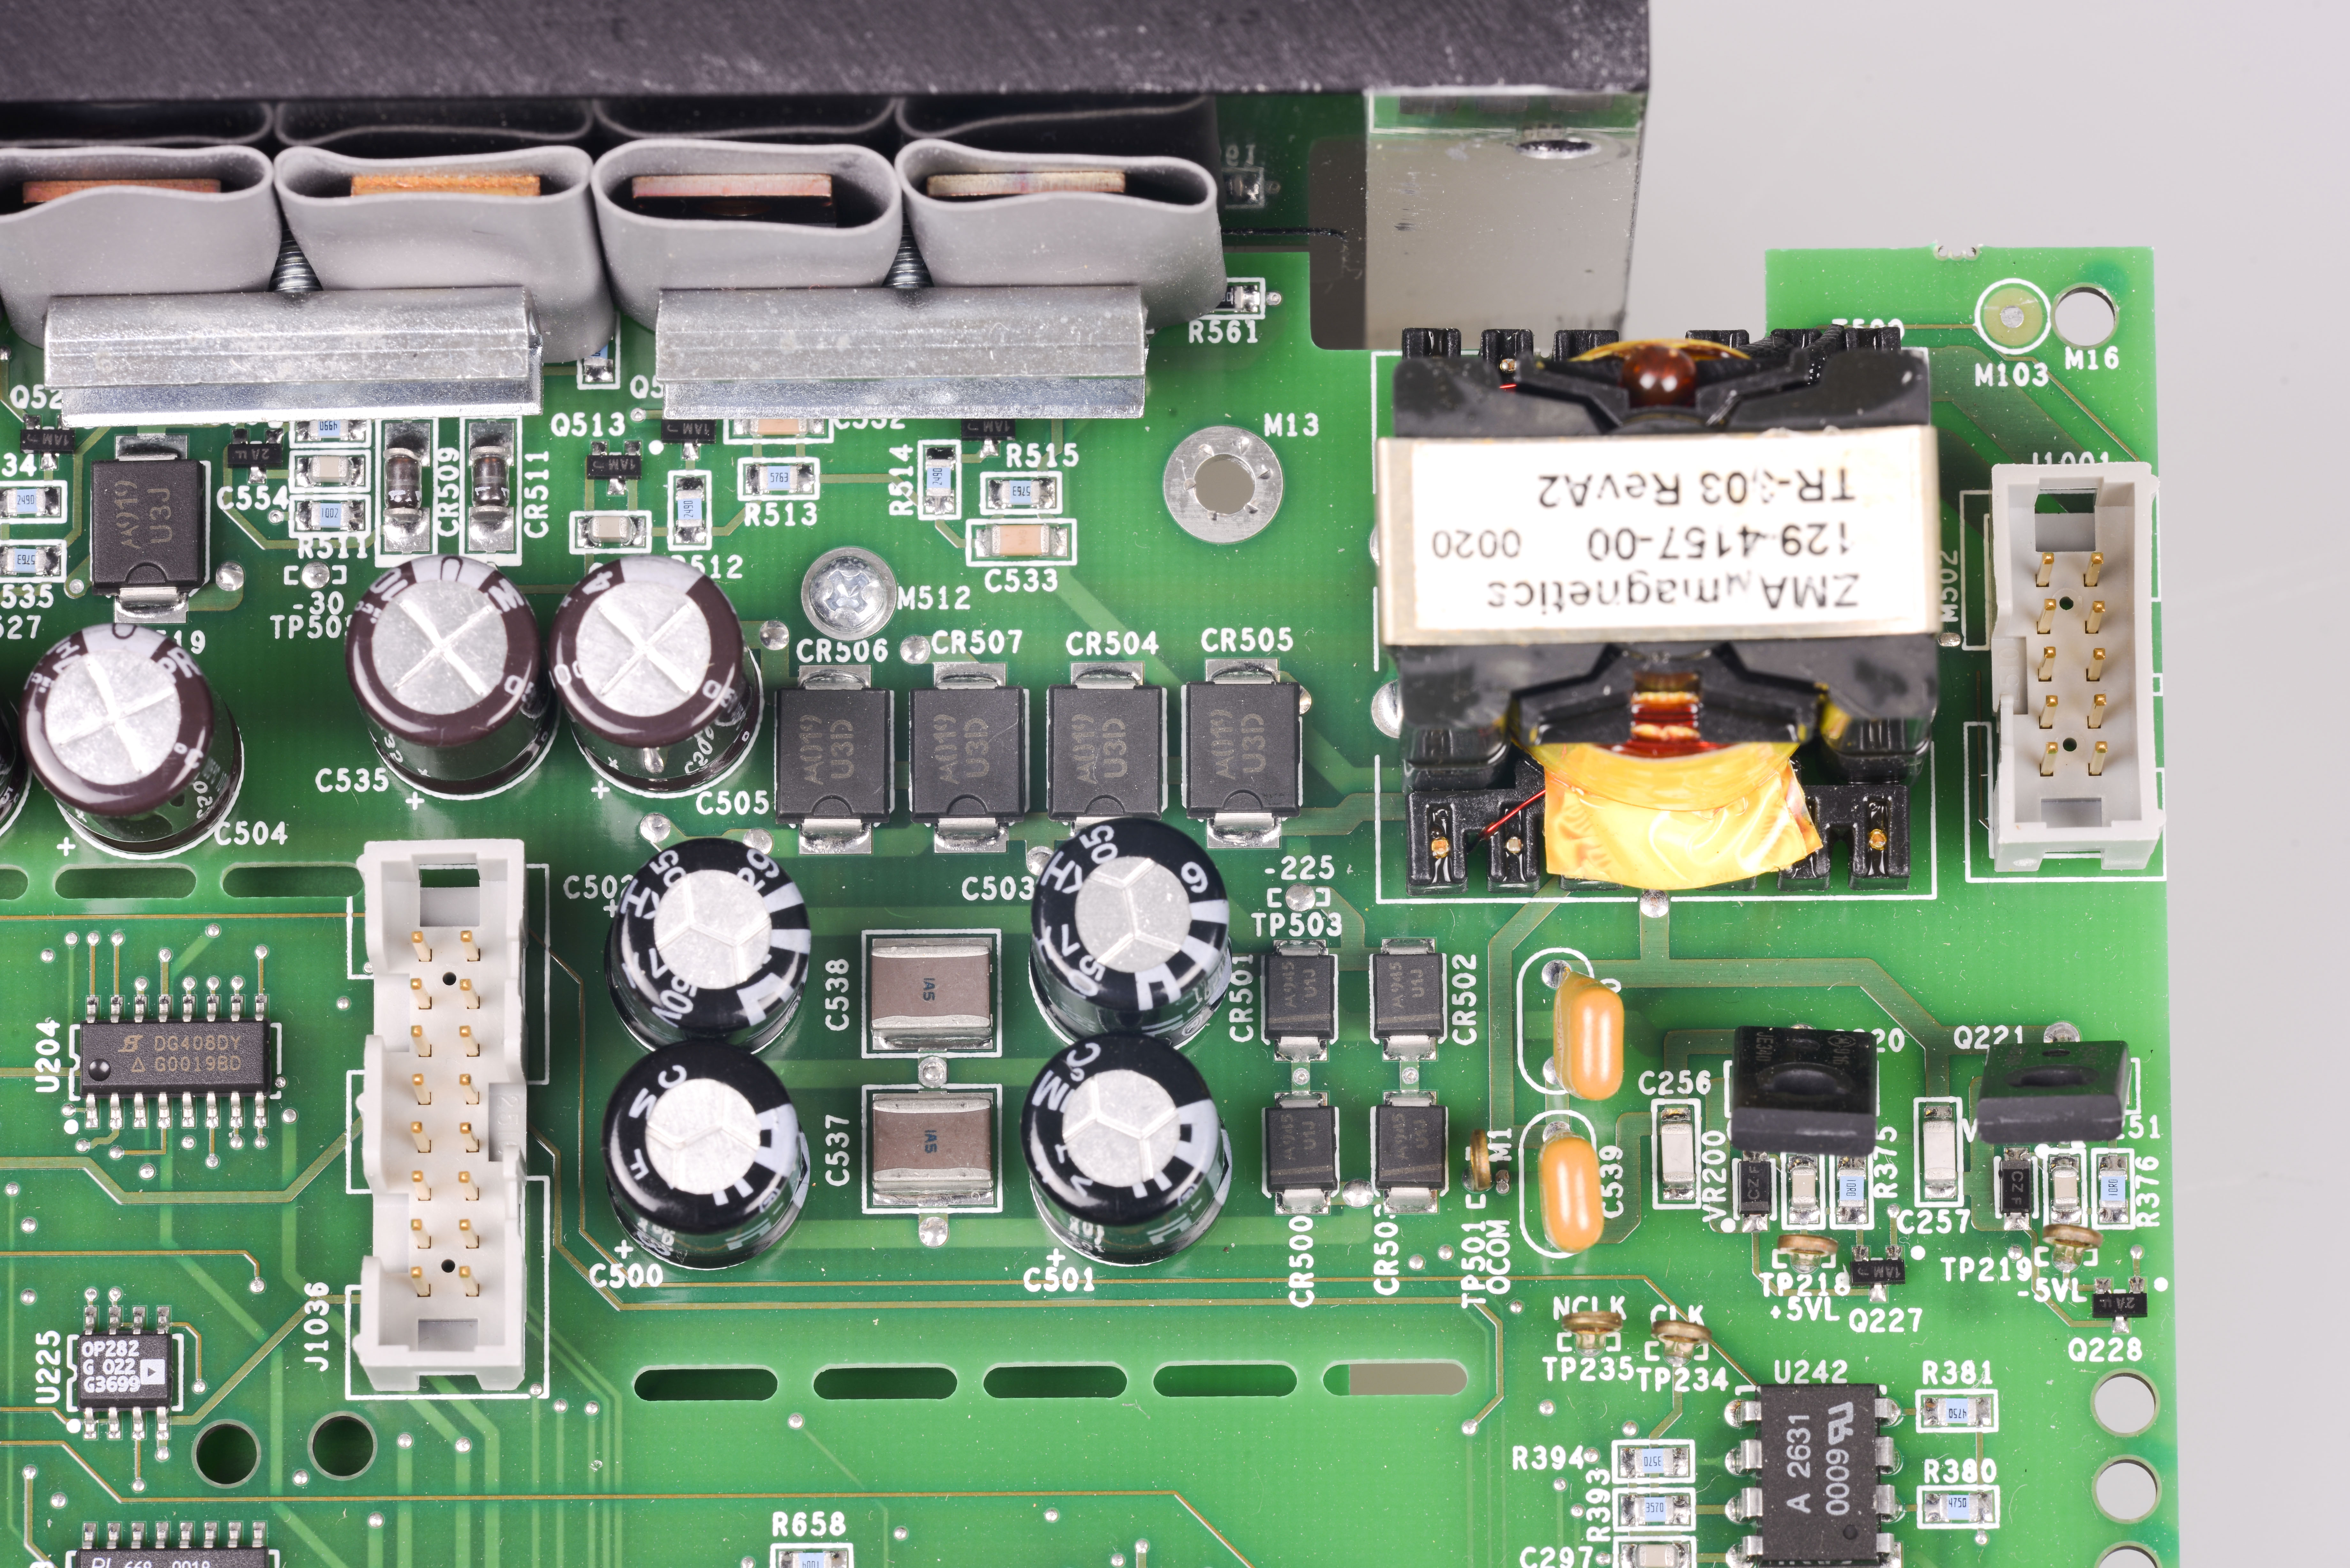 Keithley Model 2400 Review And Vfd Repair Connection Running Explicitly From The Power Supply To Opamp There Is Tp232 Test Point Just Near Serial Number Sticker Marked As Vref Tho Its Connected Lt1097 Output U226 Stage Source